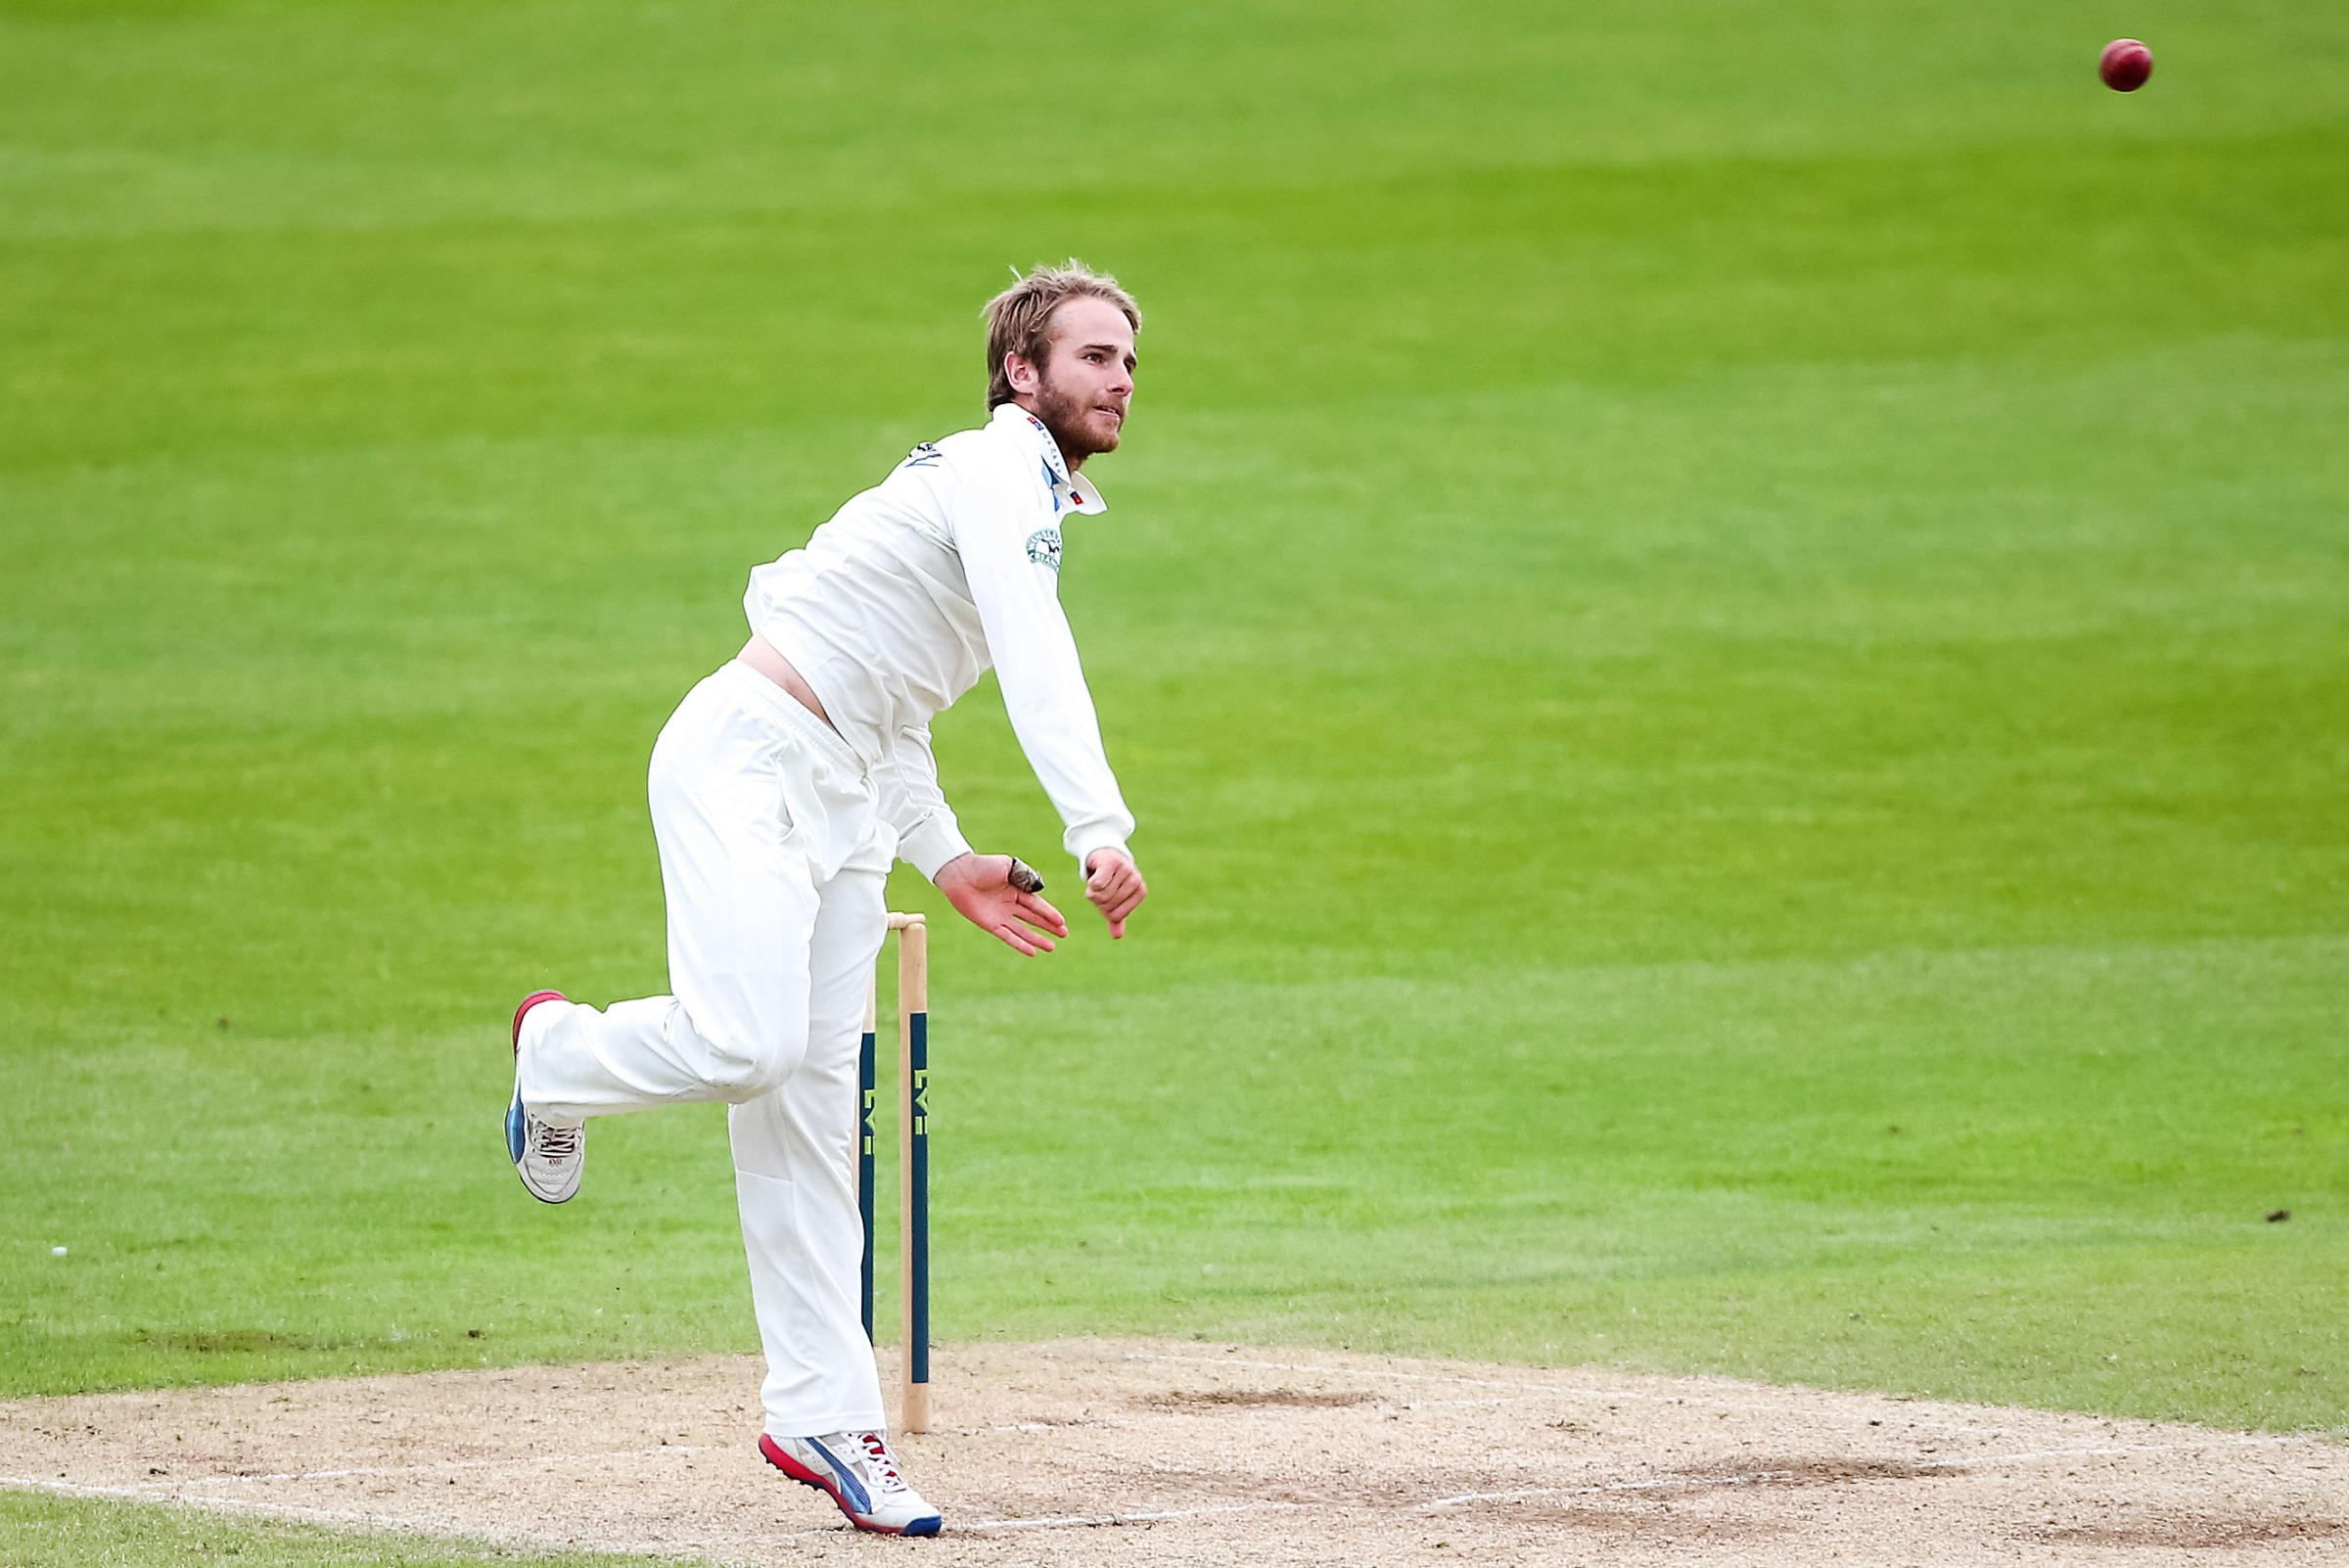 Kane Williamson in bowling action for Yorkshire. Picture: swpix.com